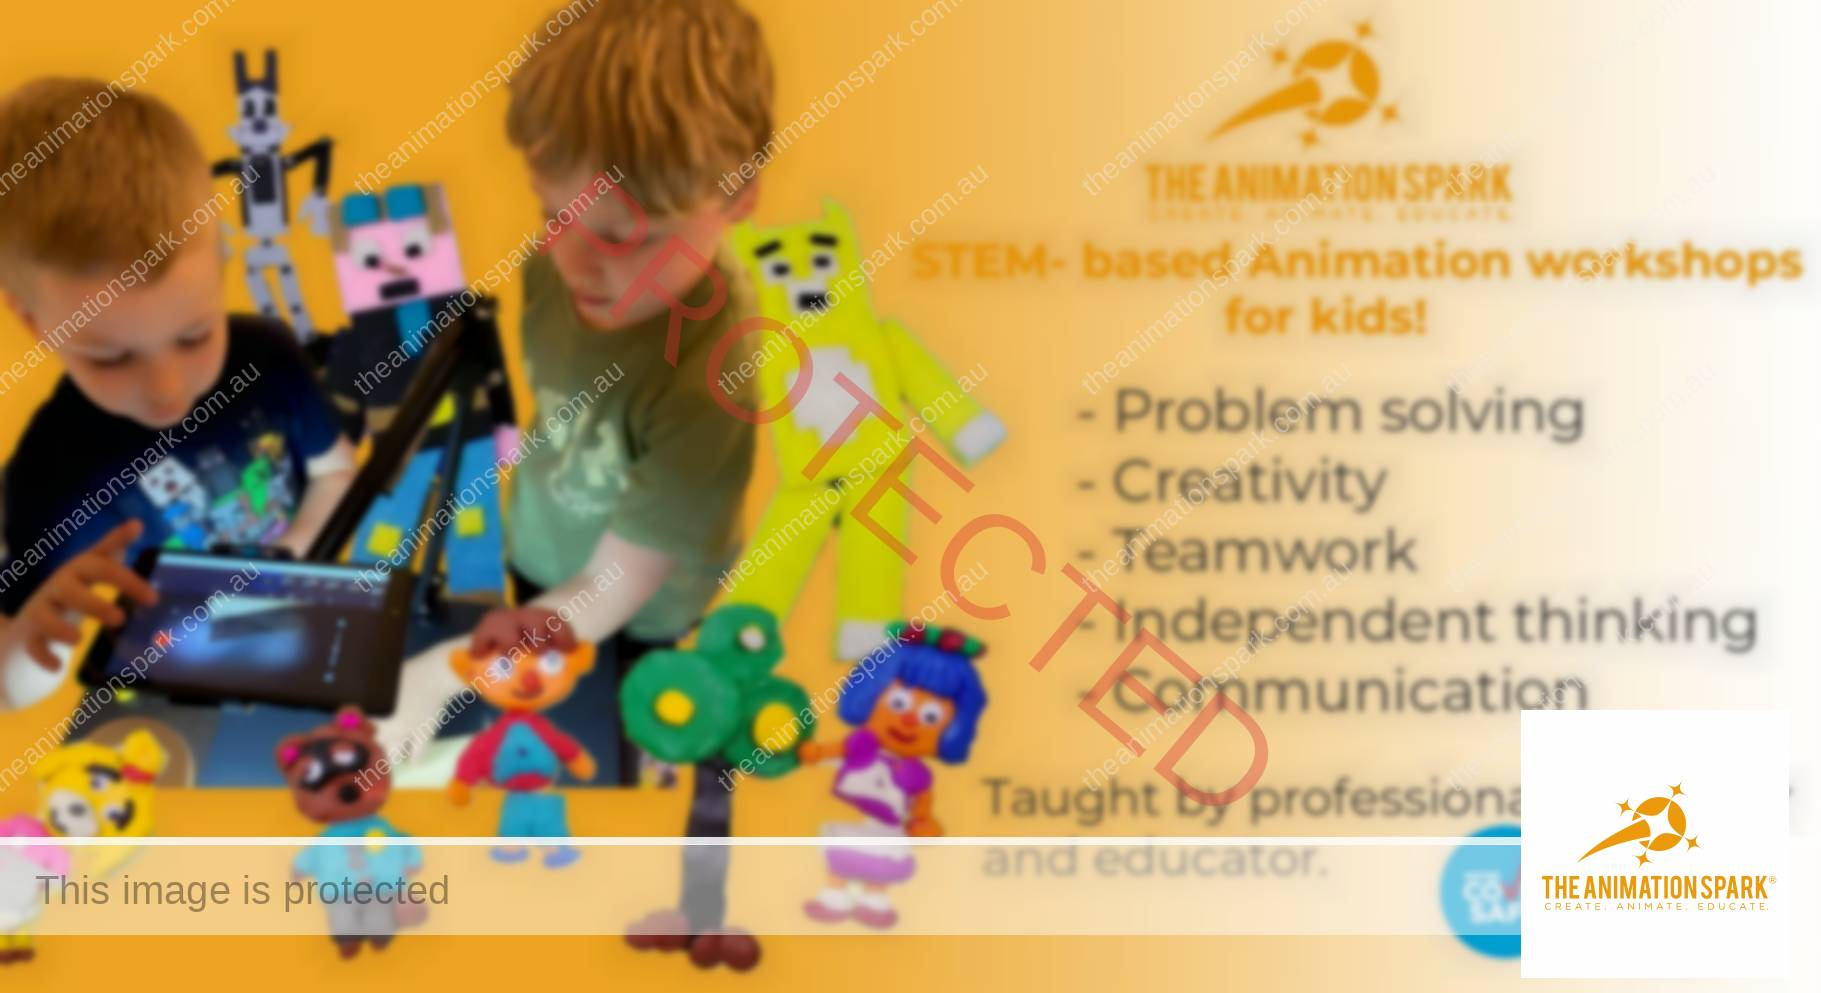 Animation workshops for kids. Children using tablet to animate. Plasticine characters.